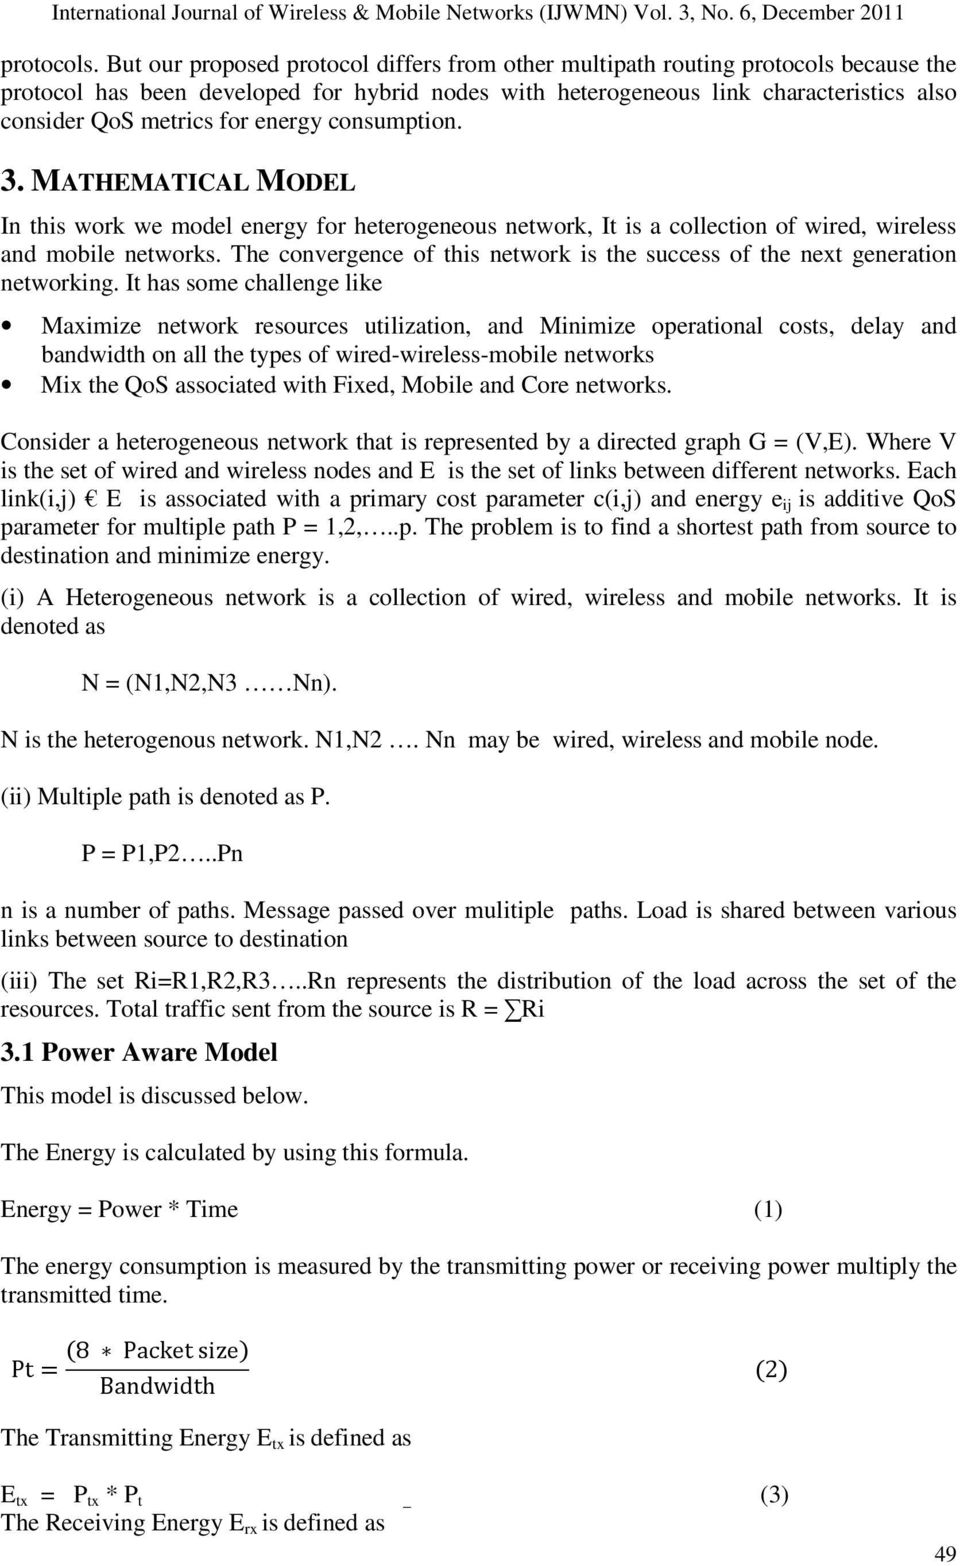 energy consumption. 3. MATHEMATICAL MODEL In this work we model energy for heterogeneous network, It is a collection of wired, wireless and mobile networks.